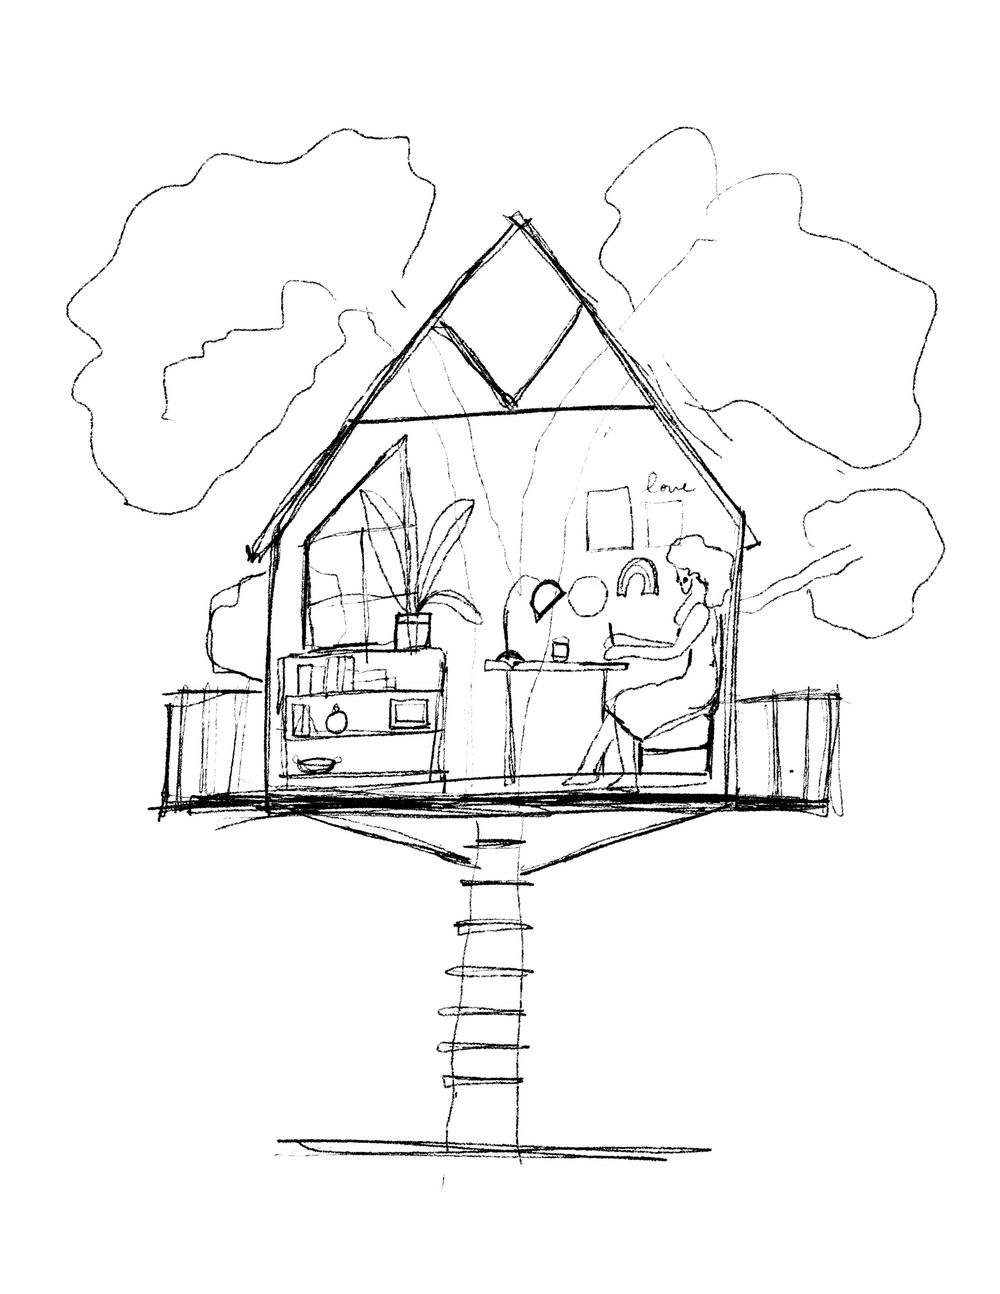 My dream studio: A Tree House - image 1 - student project